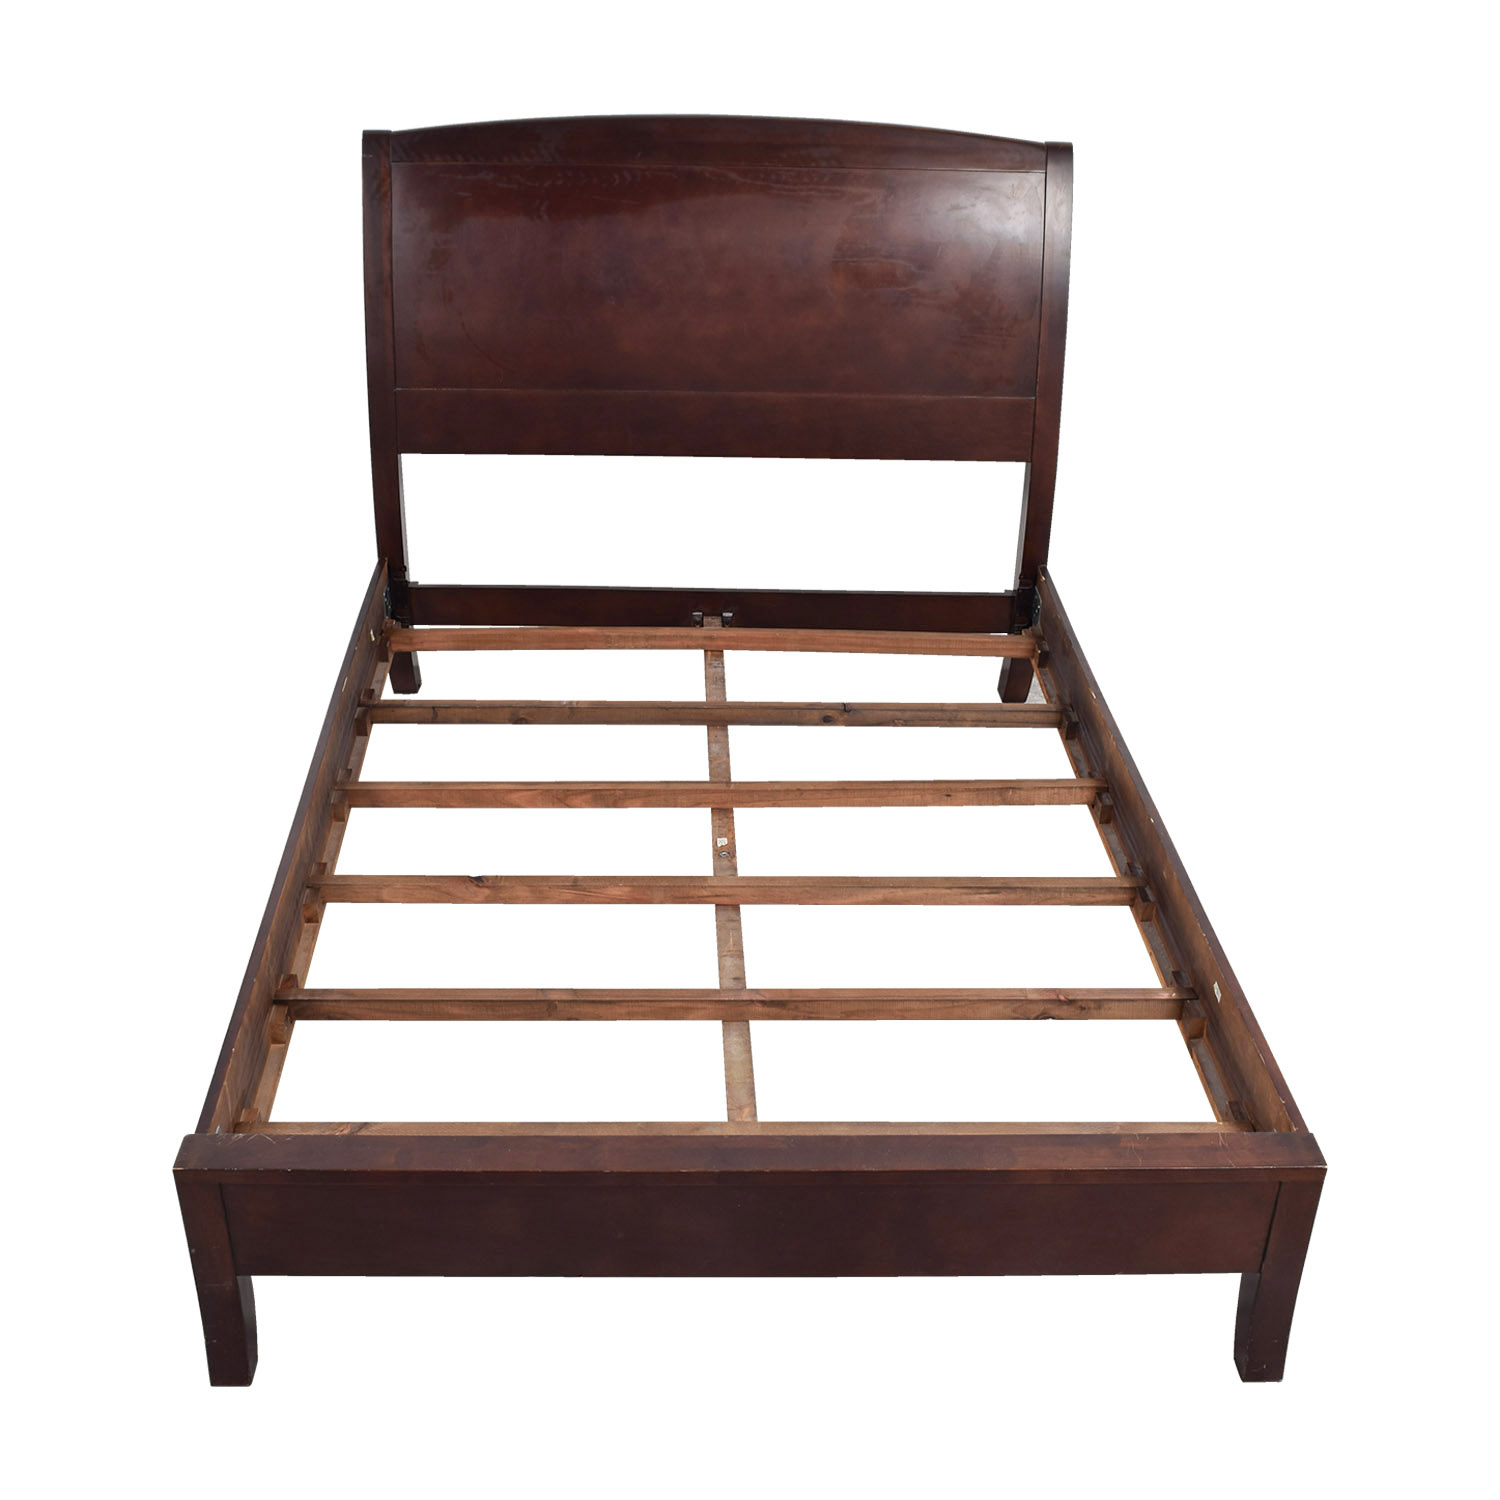 Zocalo Zocalo Queen Modern Sleigh Bed Frame second hand